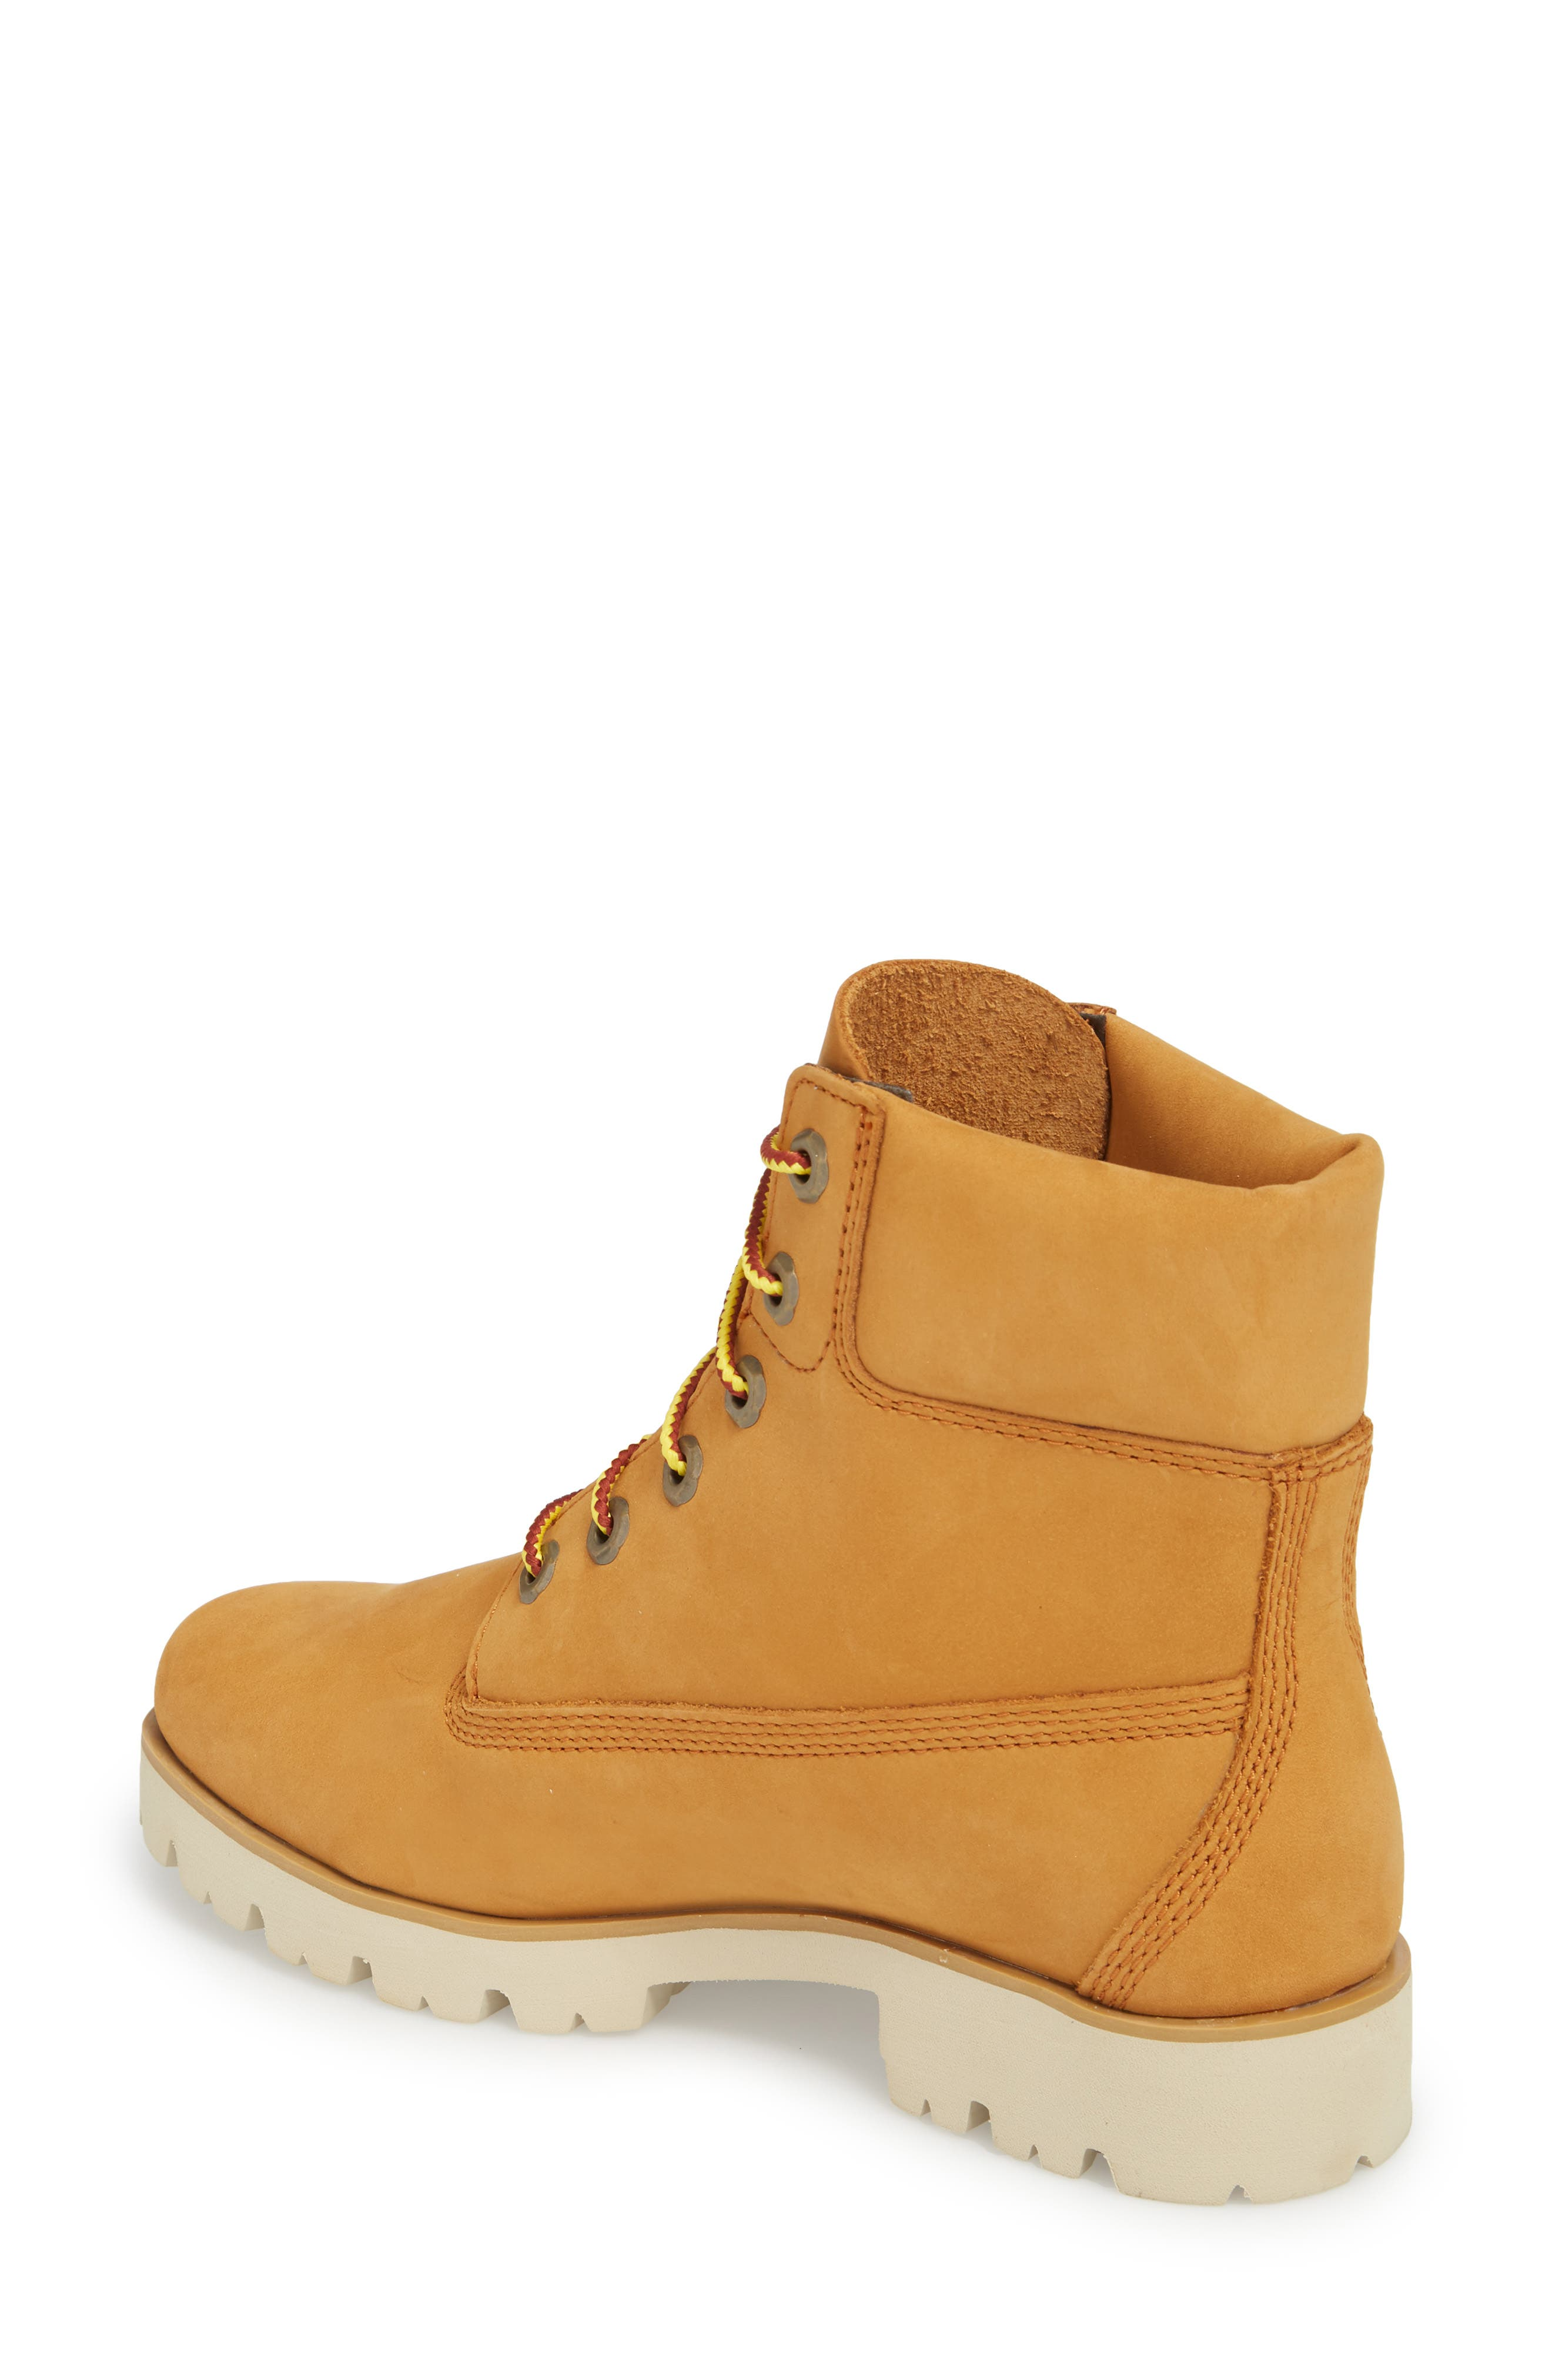 6-Inch Heritage Lite Water-Resistant Boot,                             Alternate thumbnail 2, color,                             Wheat Nubuck